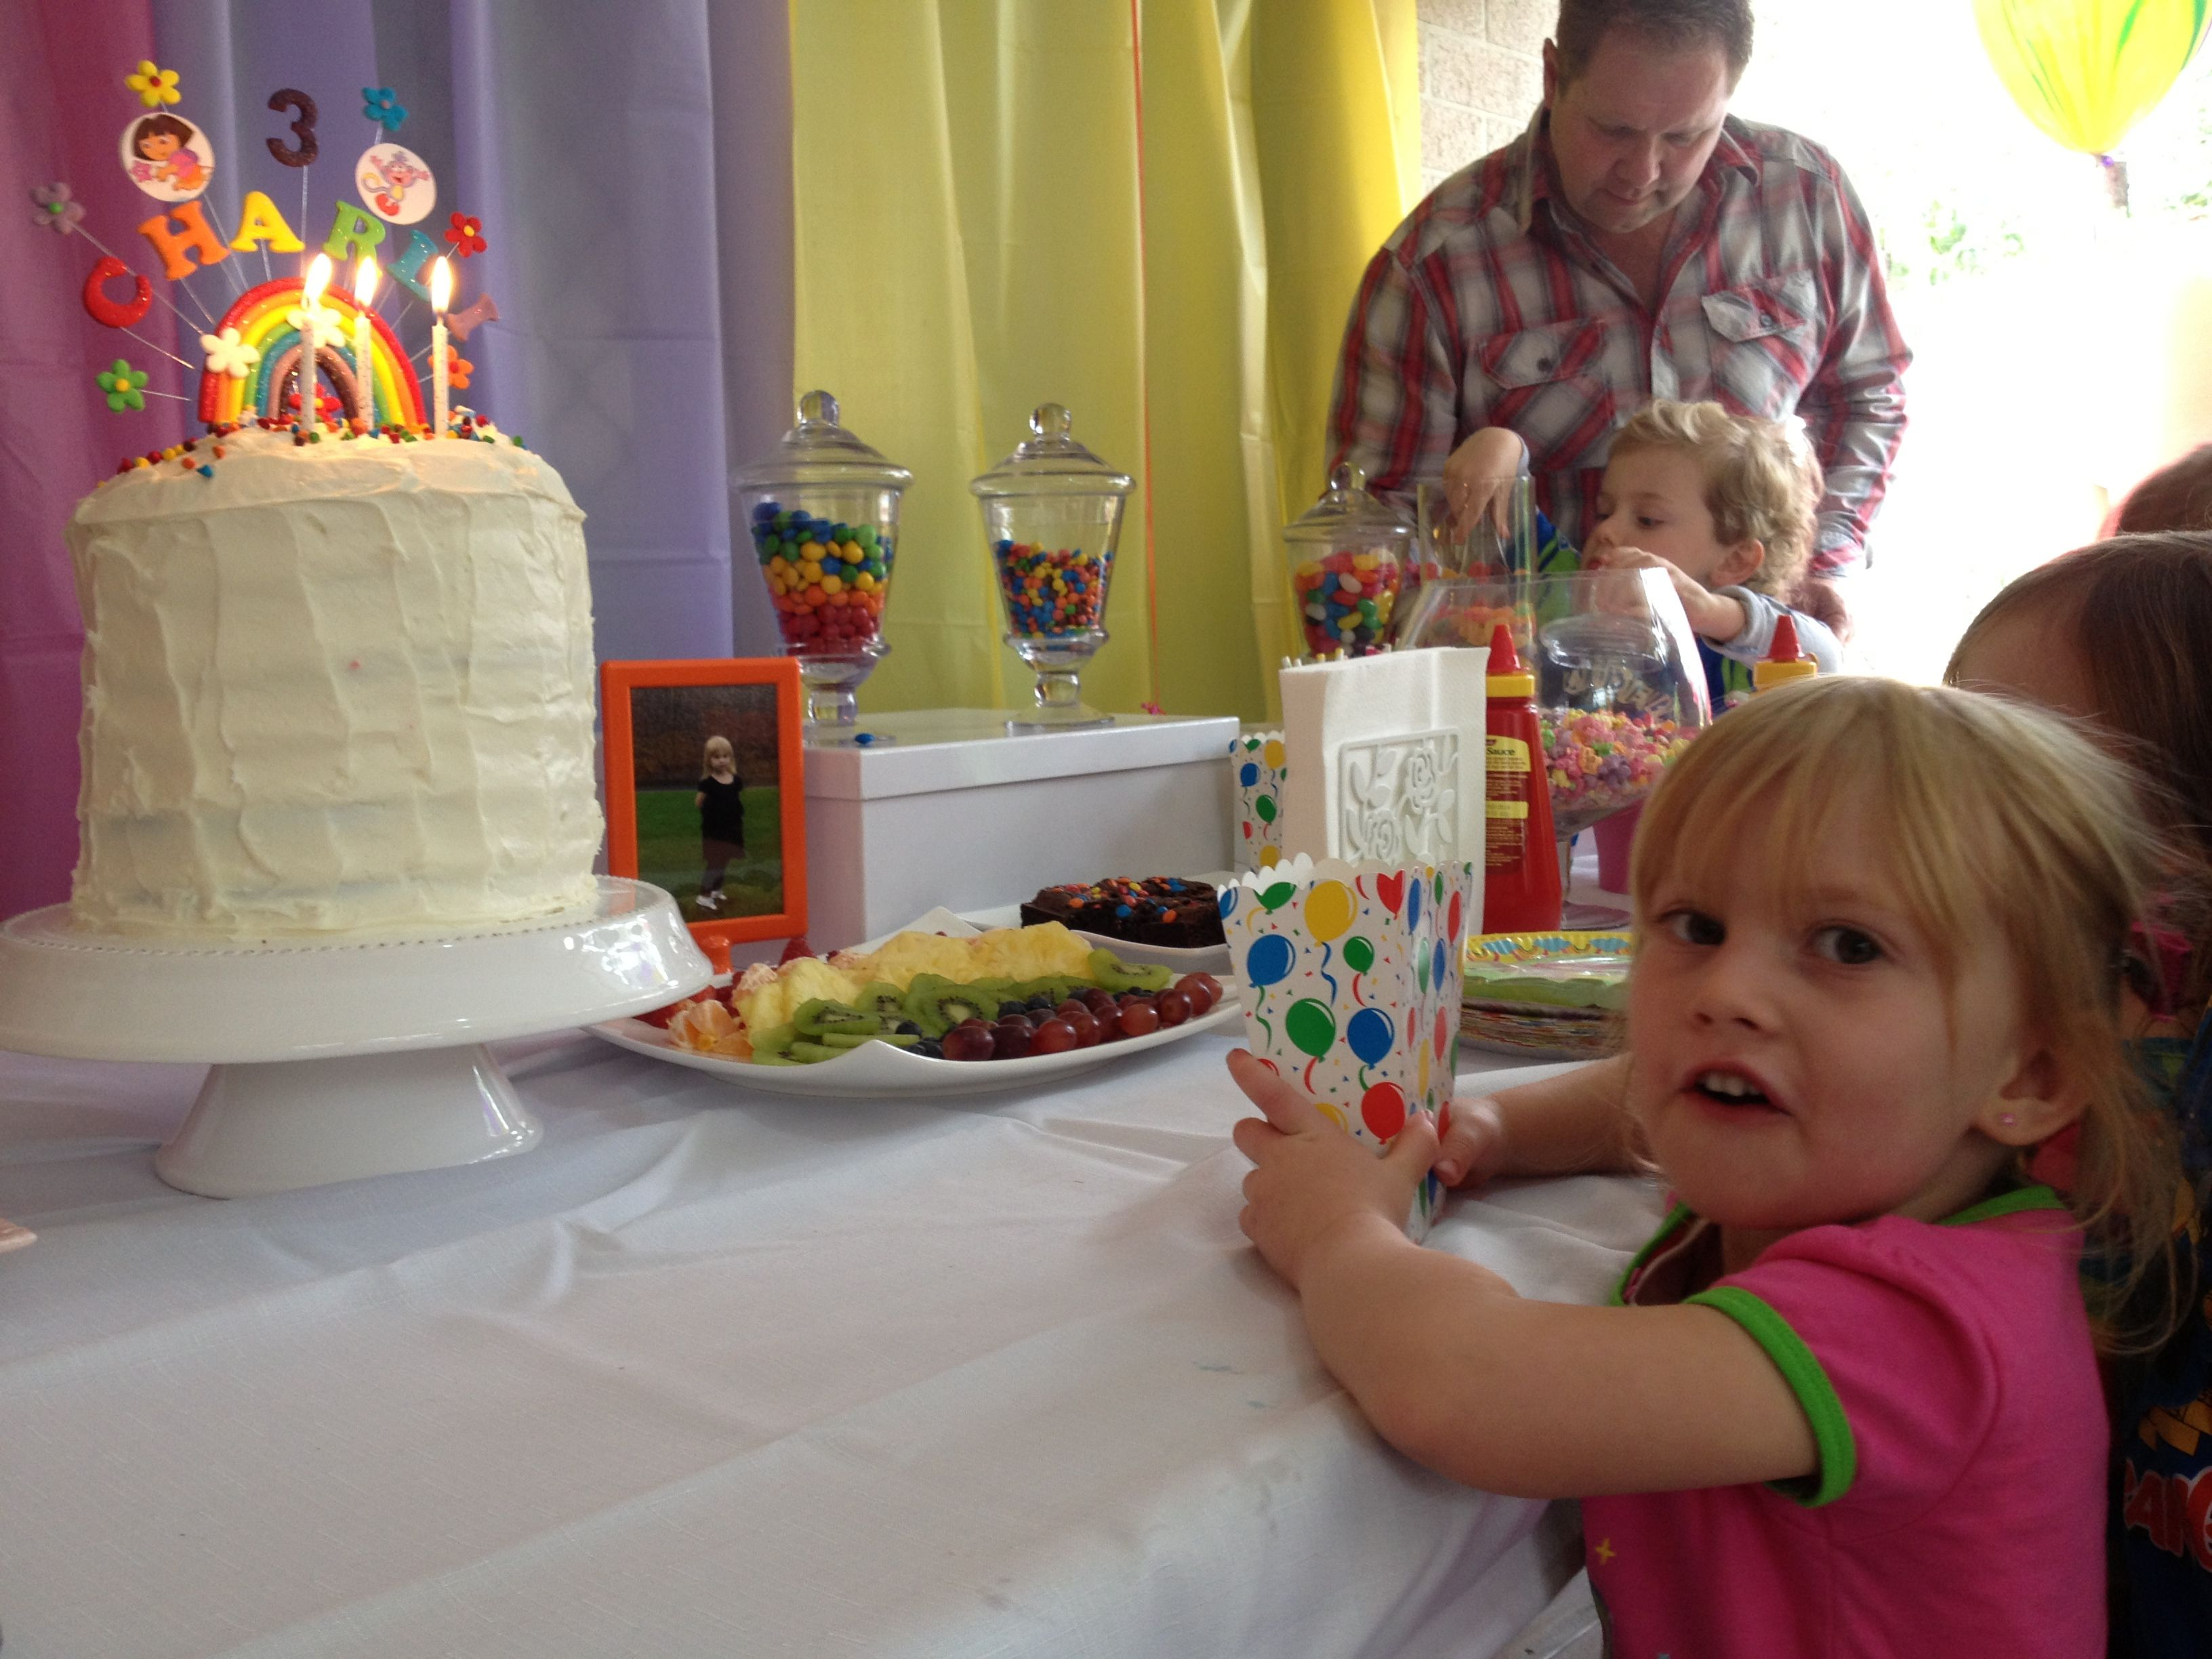 Charli the birthday girl waiting to blow out her candles